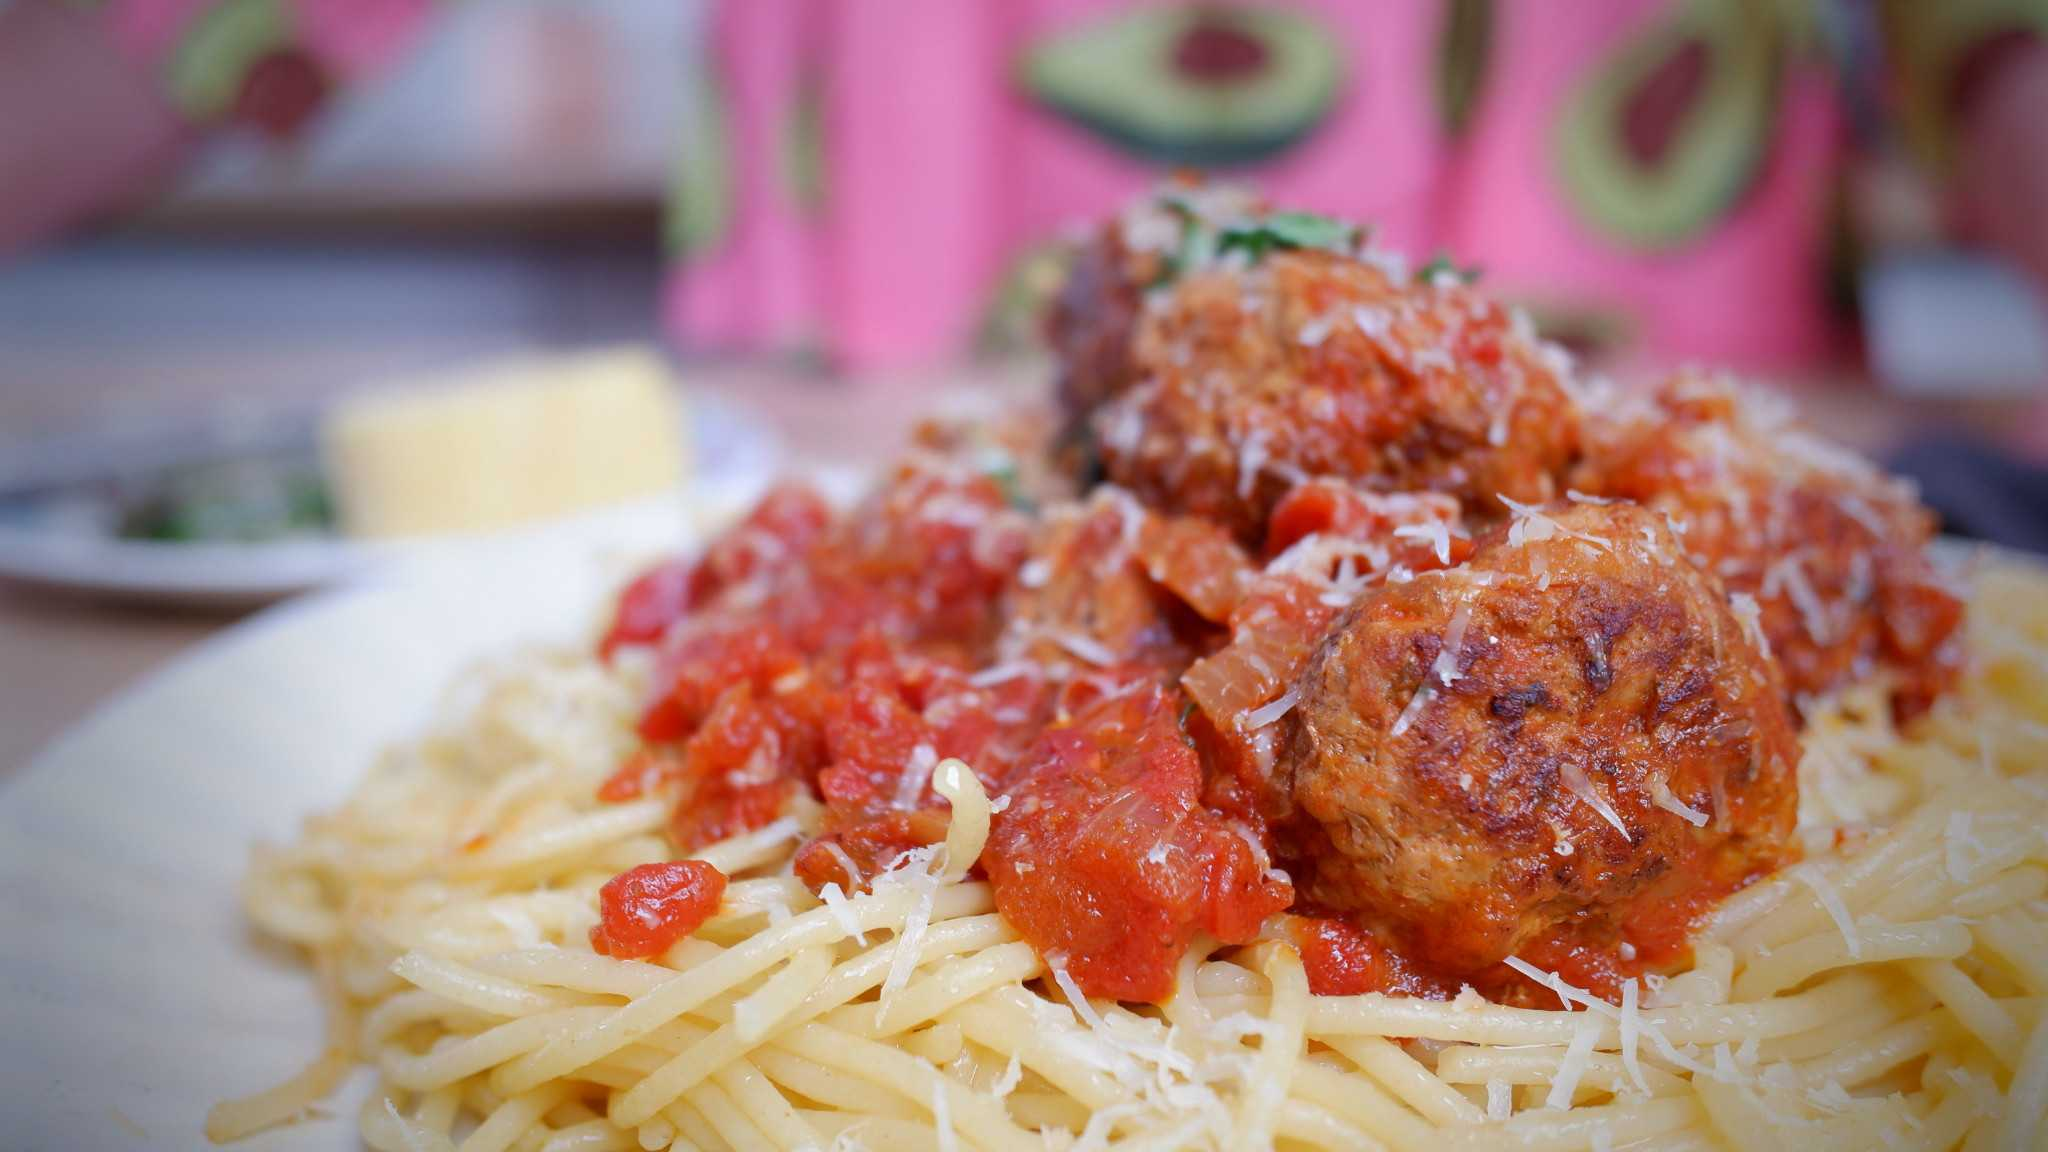 9Honey Every Day Kitchen: These are movie style meatball